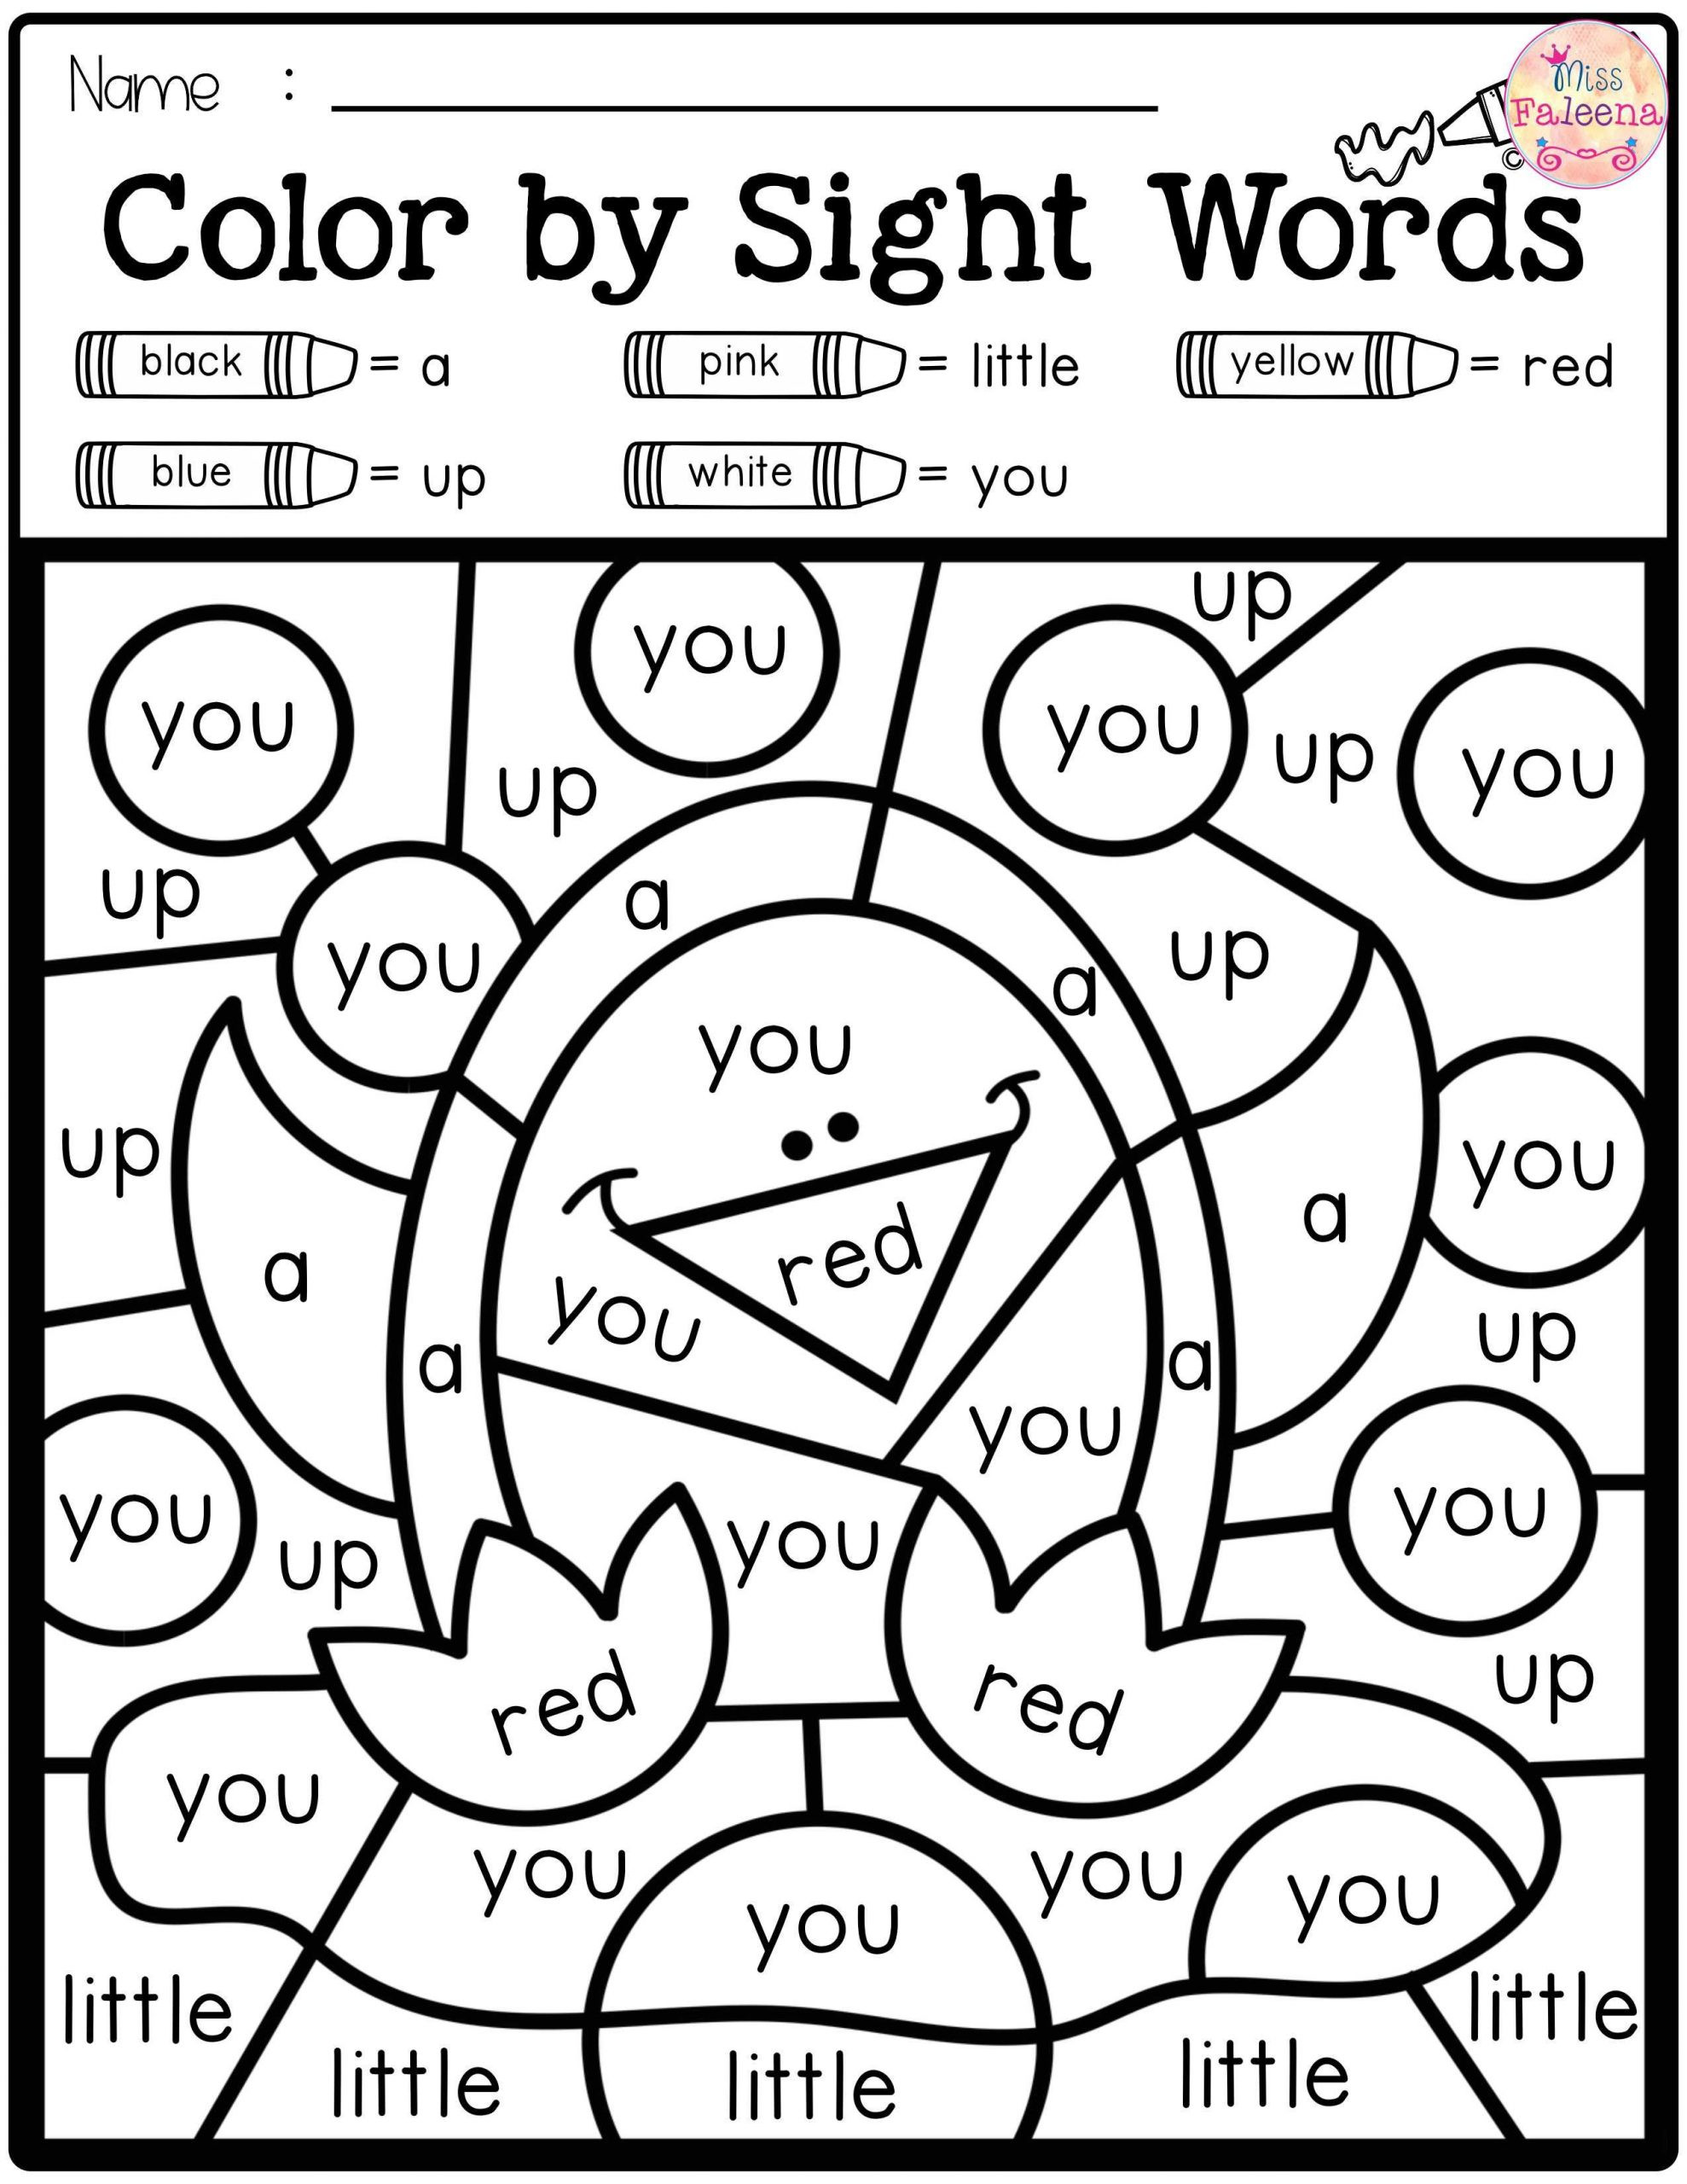 1st Grade Sight Word Worksheets Coloring Book Free Color by Code Sightrds Pre Primer with